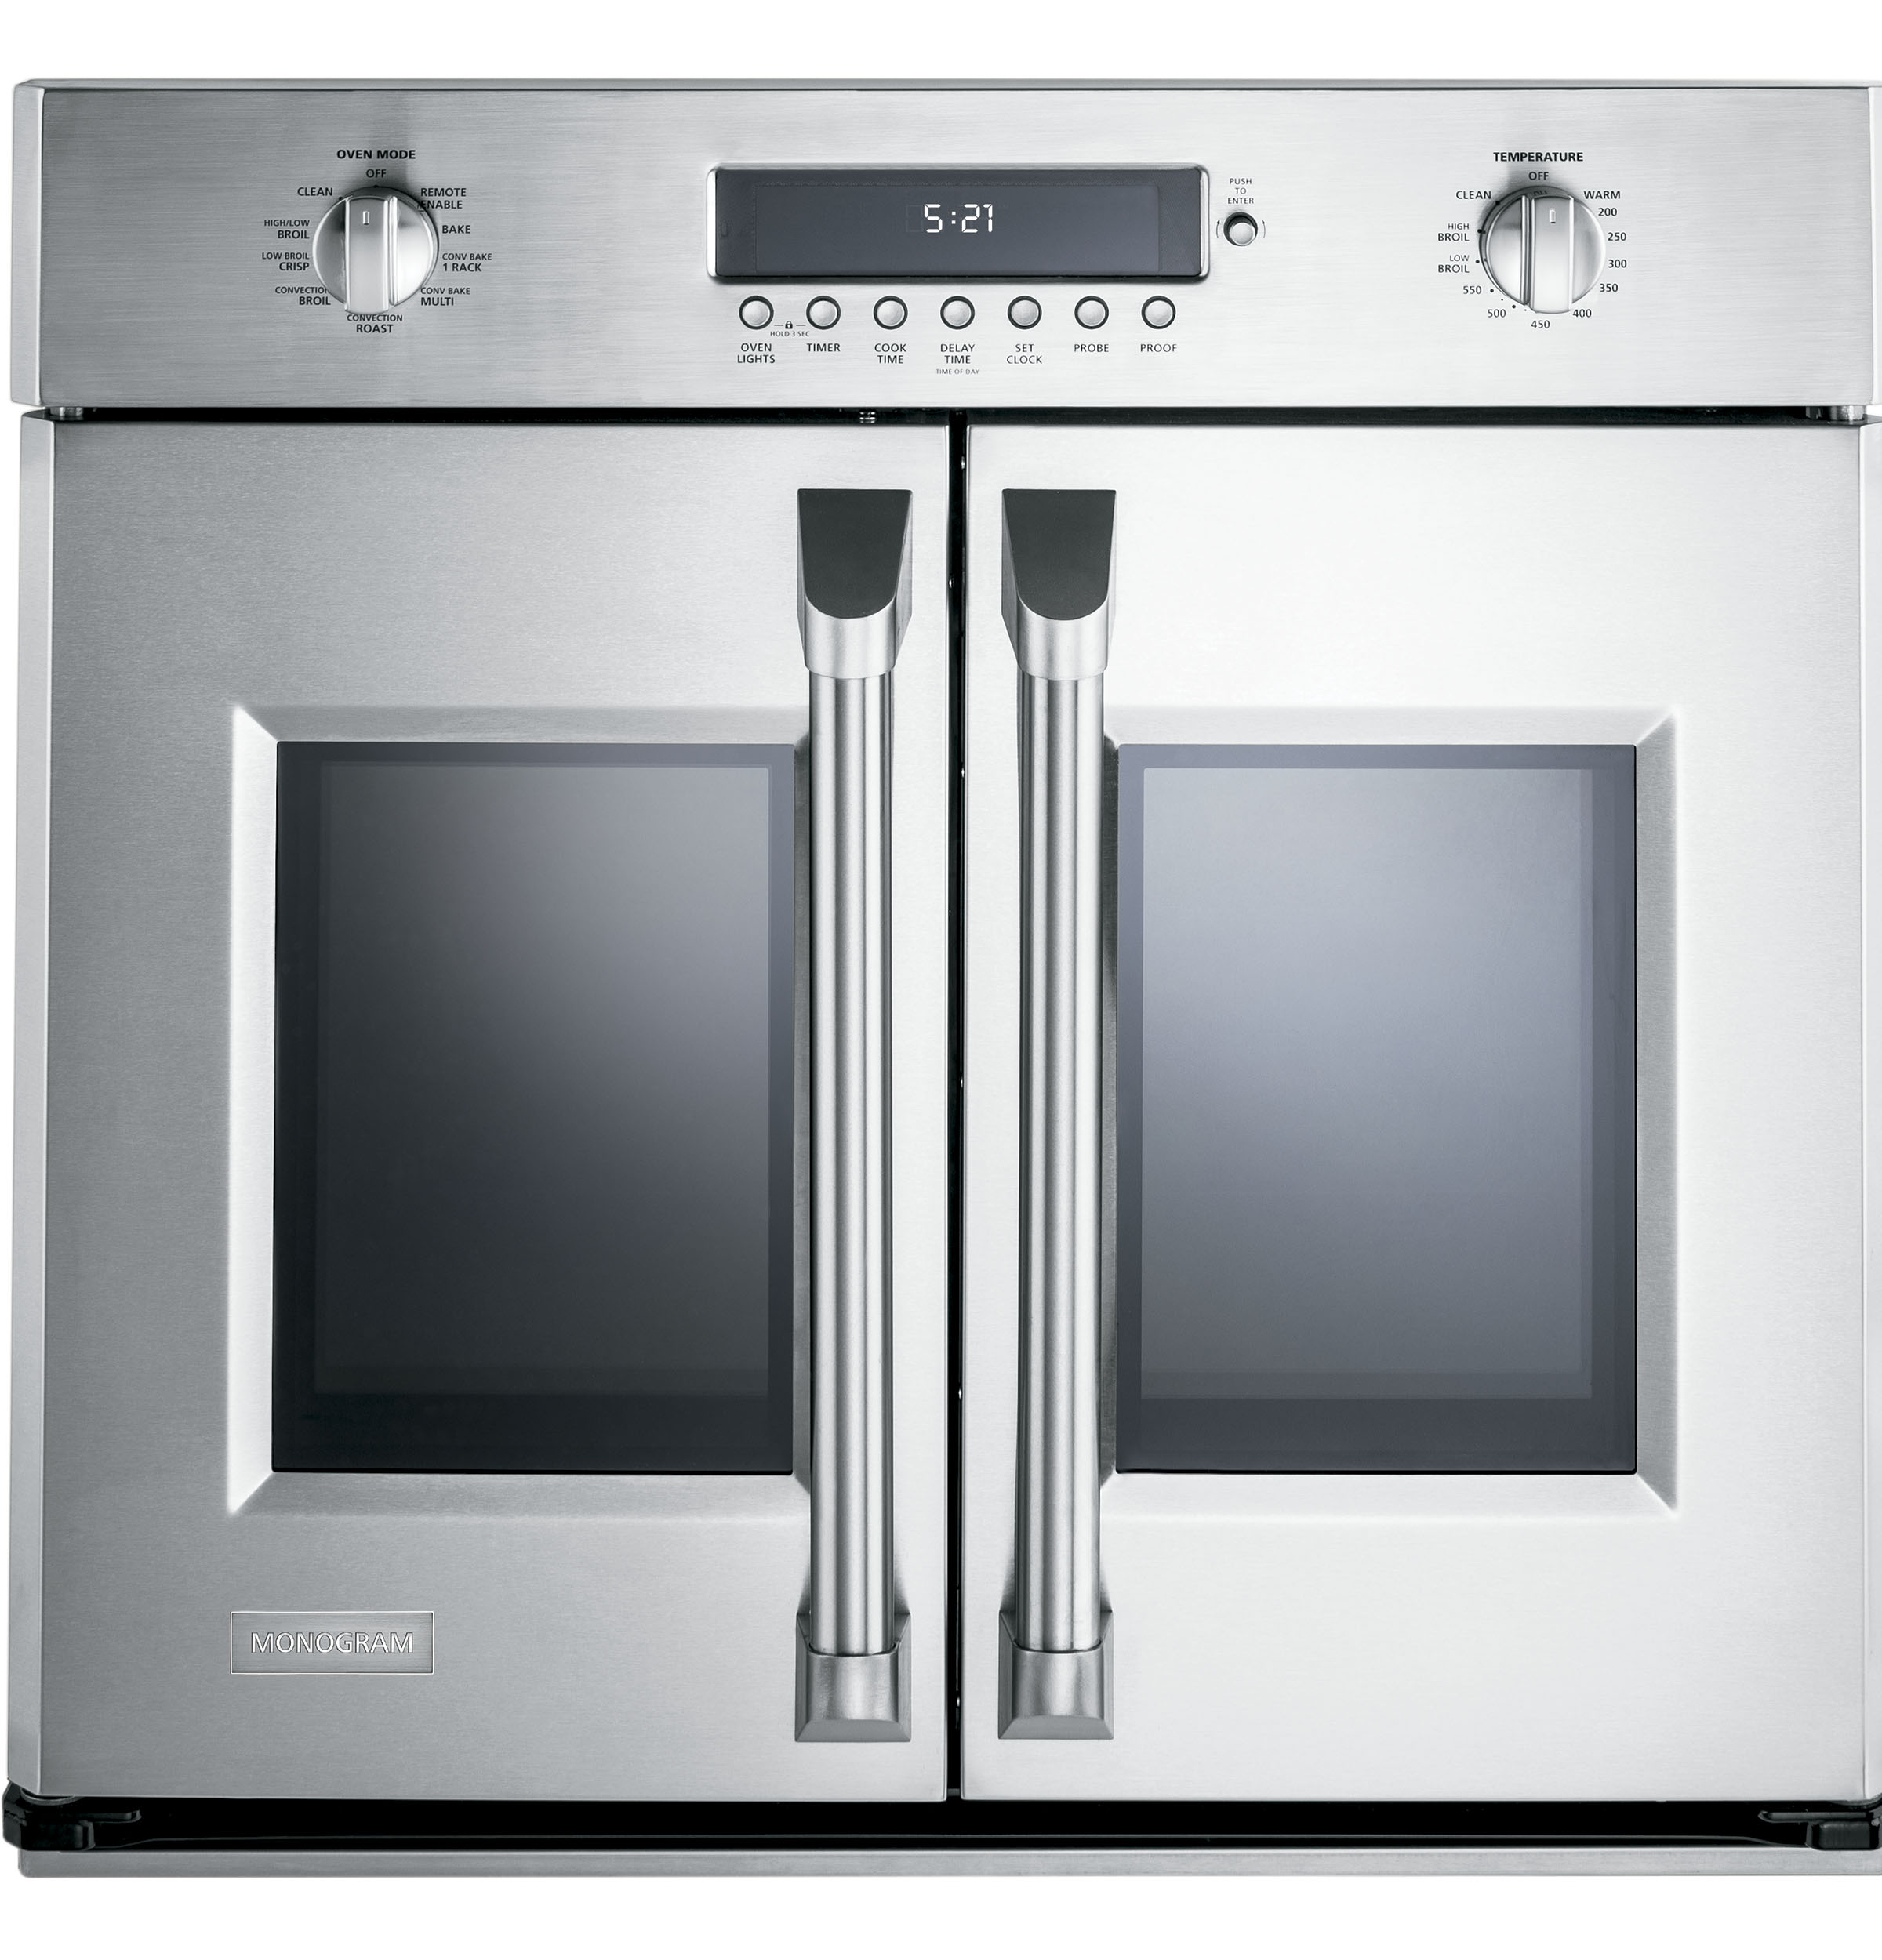 "Monogram Monogram 30"" Professional French-Door Electronic Convection Single Wall Oven"